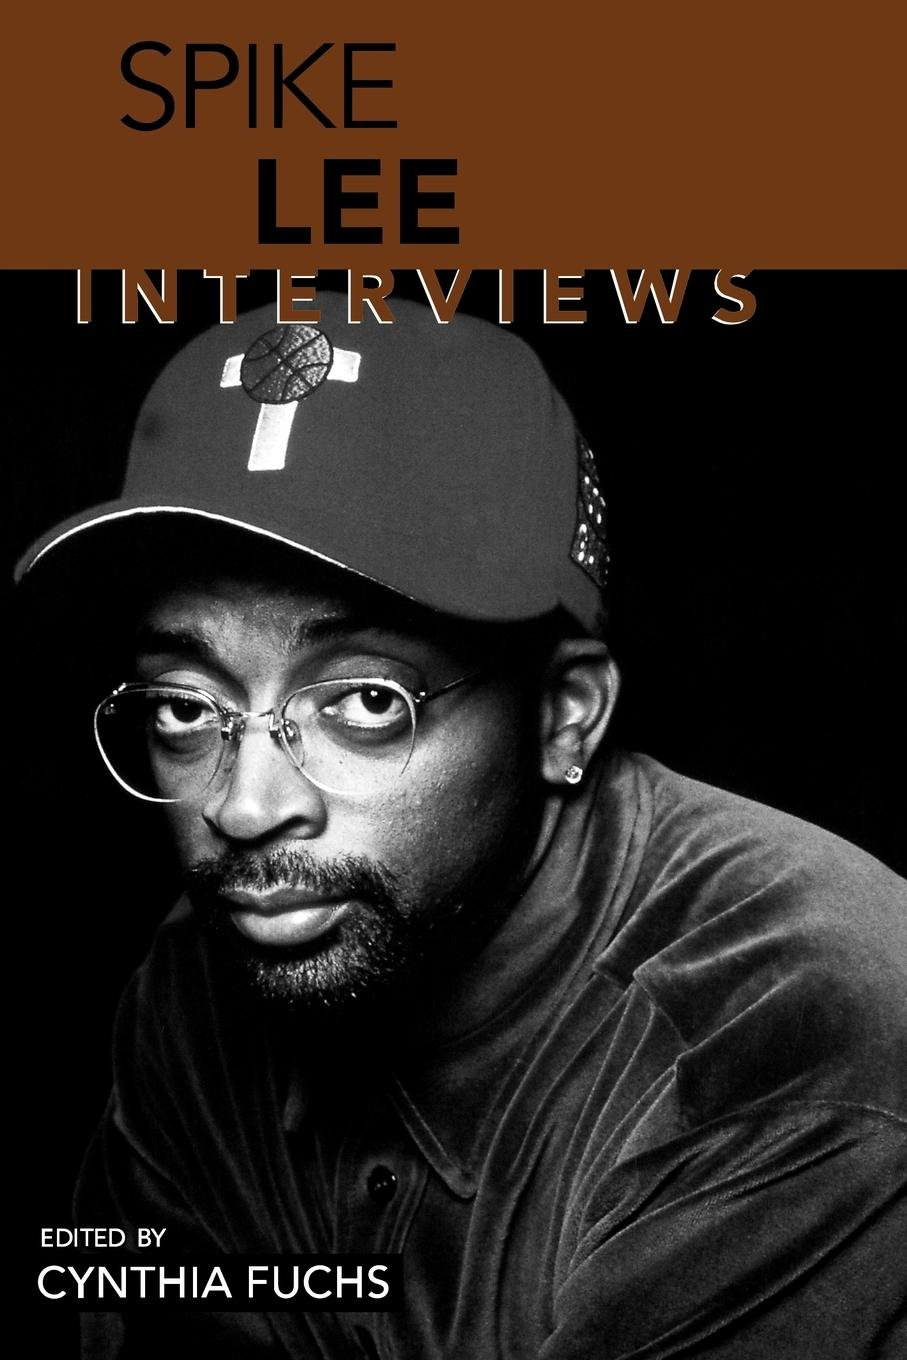 Buy Spike Lee Interviews